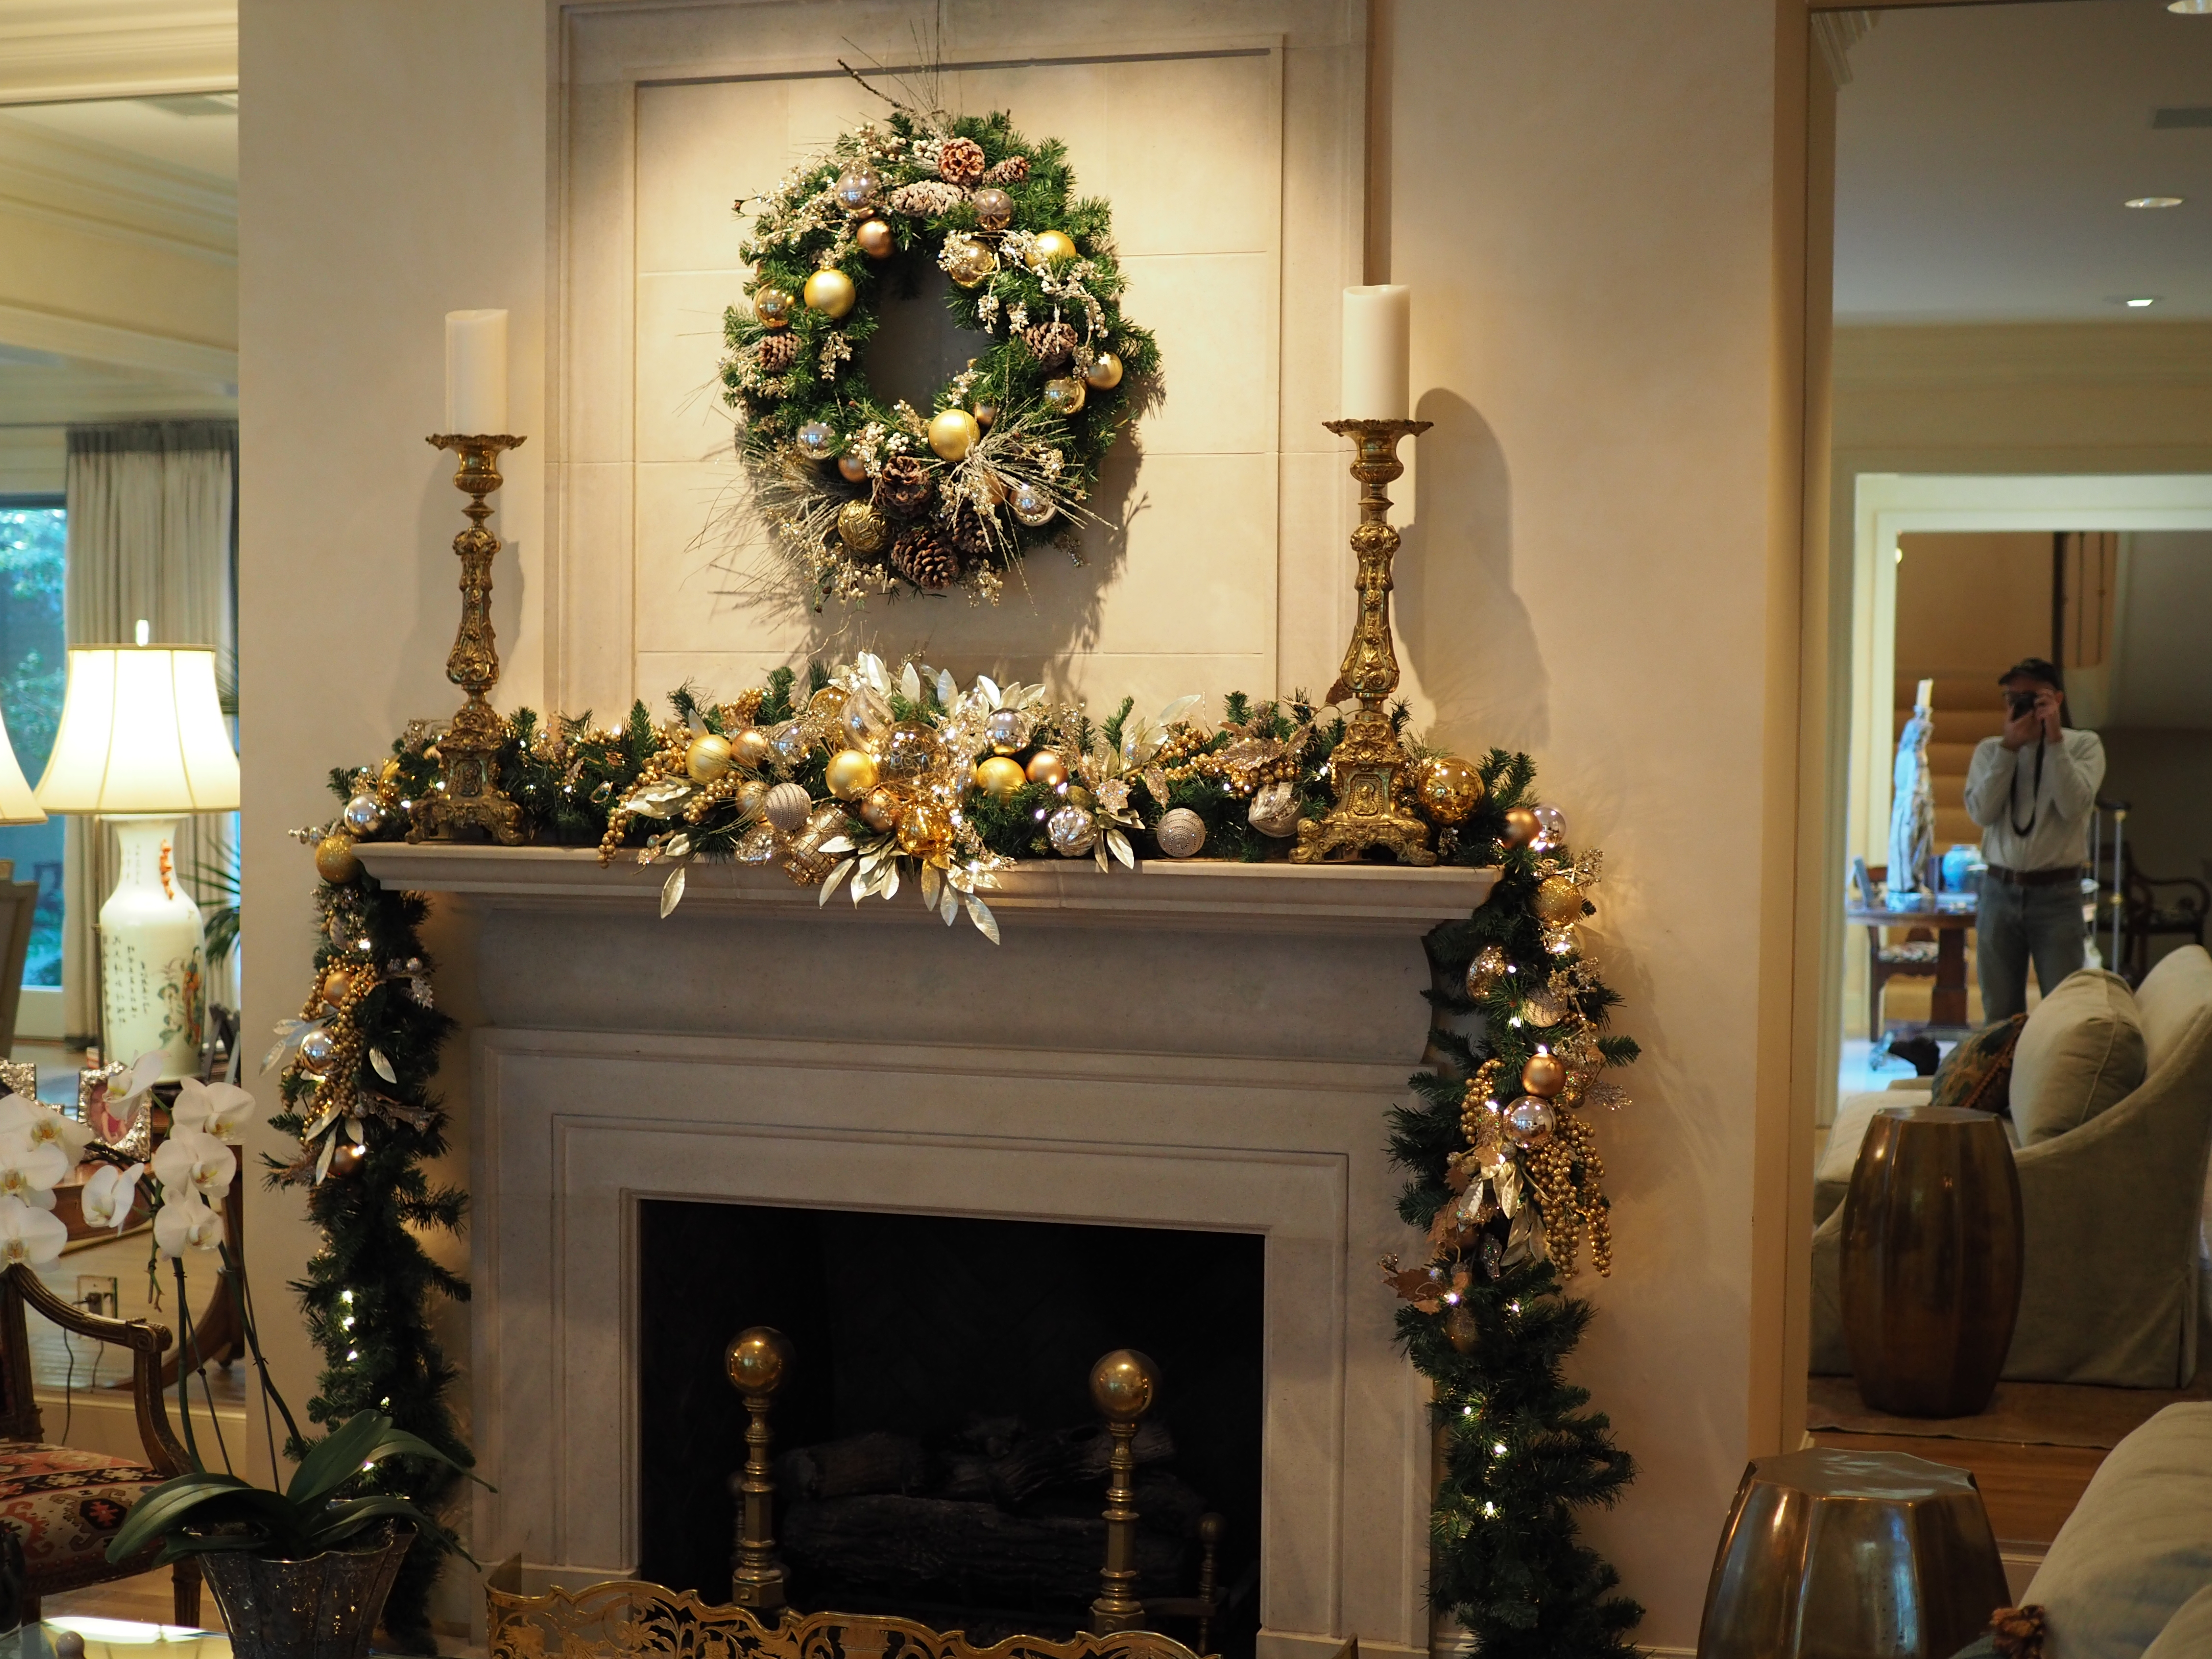 Wreath and Mantle Piece